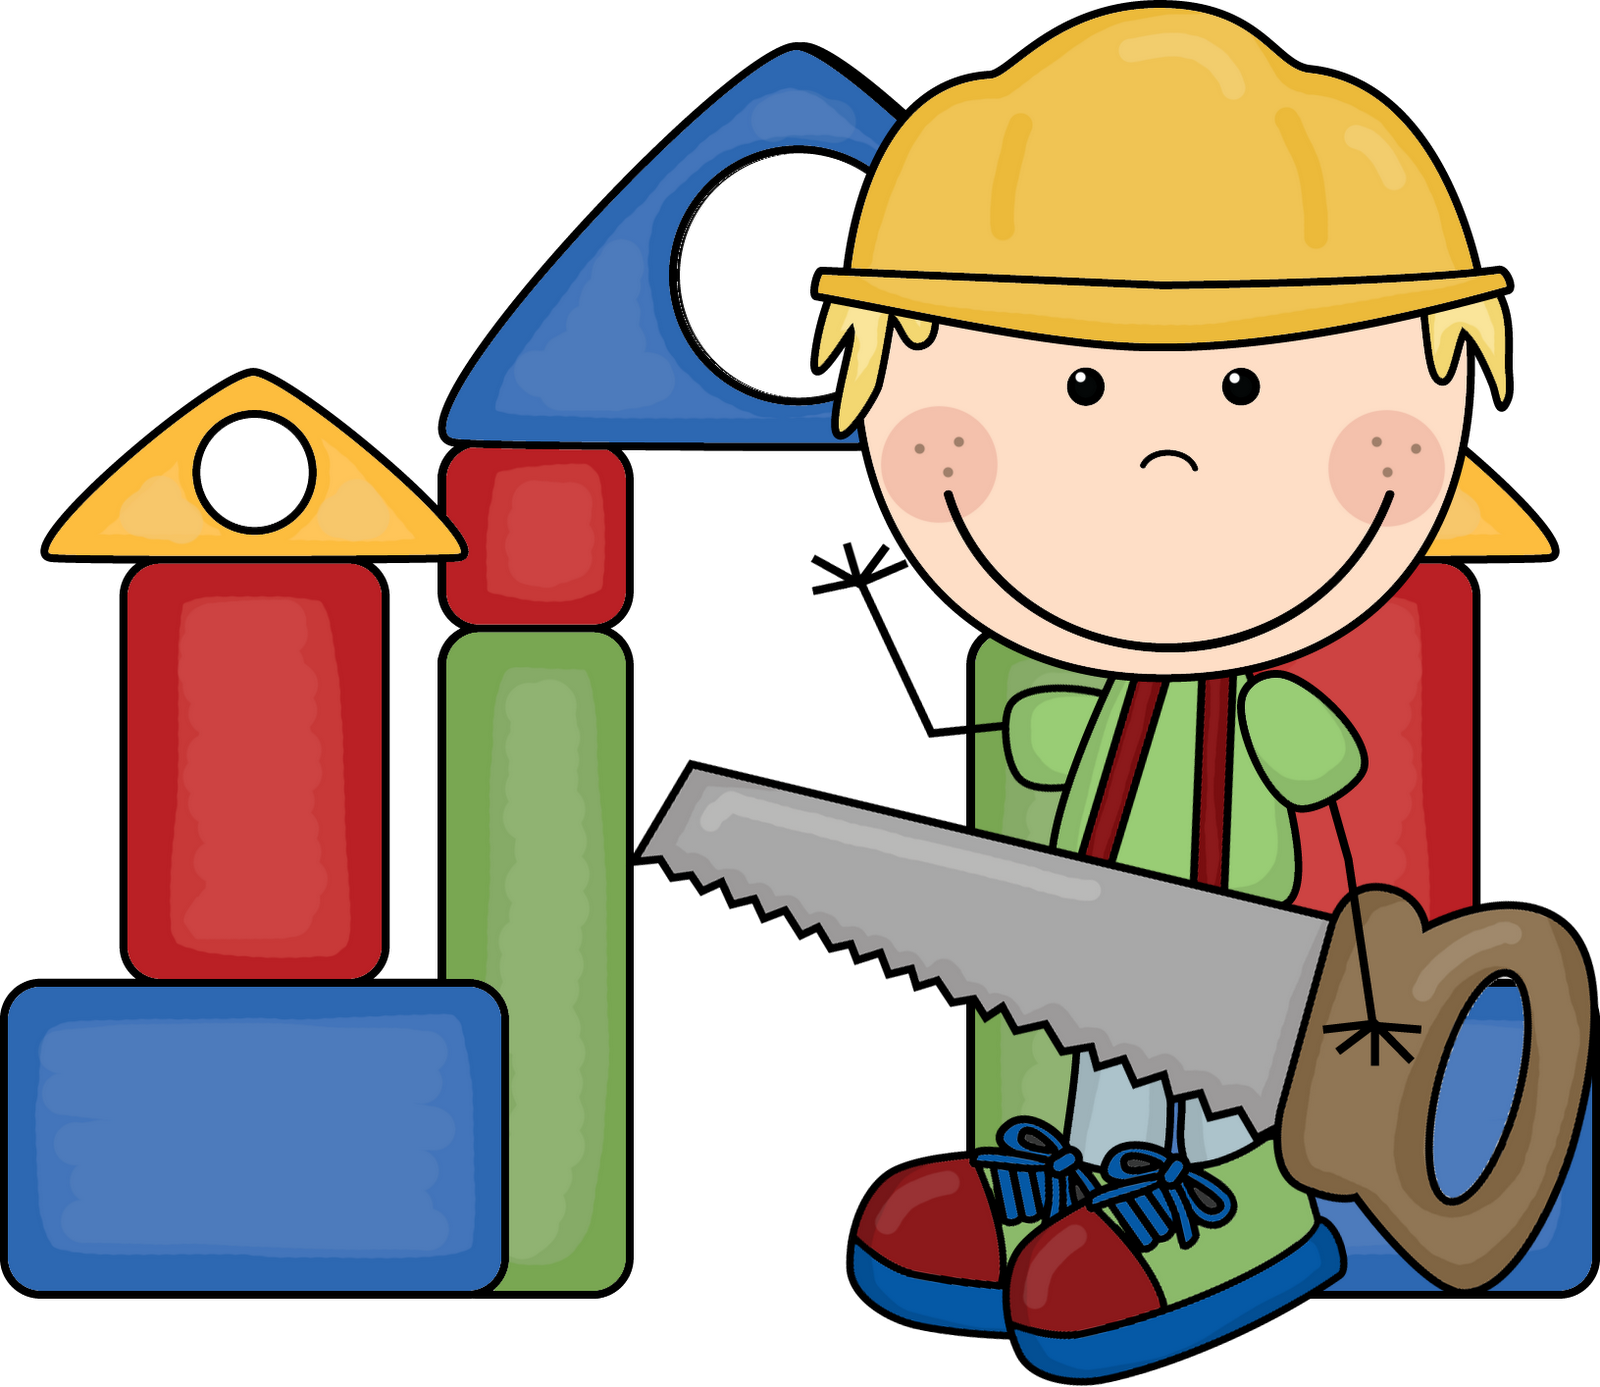 Child building with blocks clipart. Kids clipartfest materials